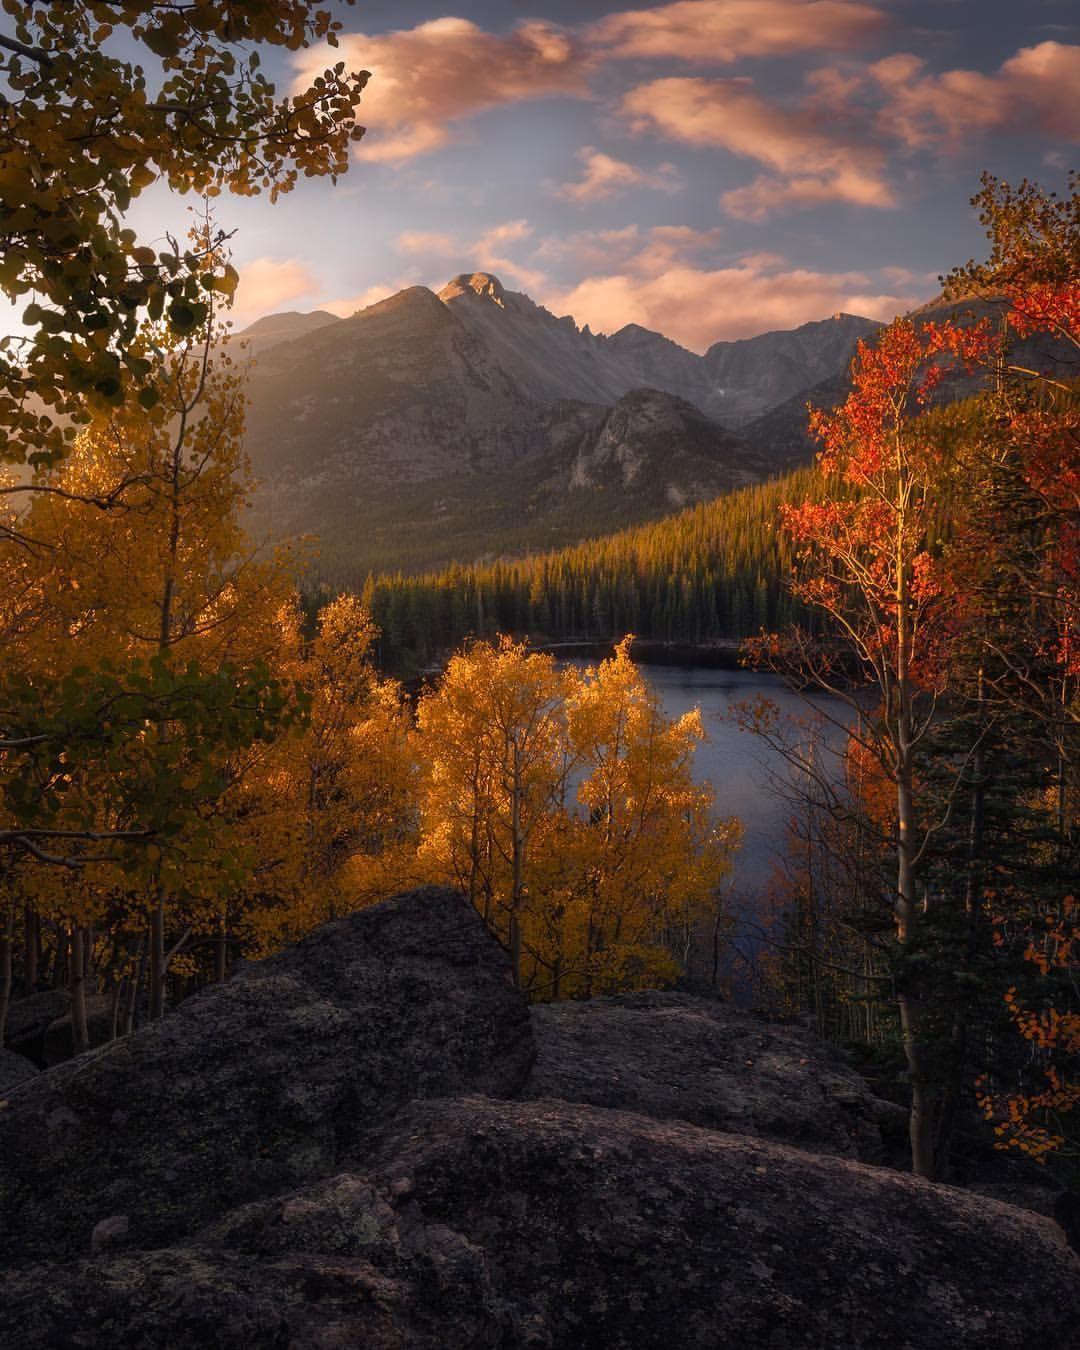 Landscapes Of Colorado: Mountains And Plains By Ben